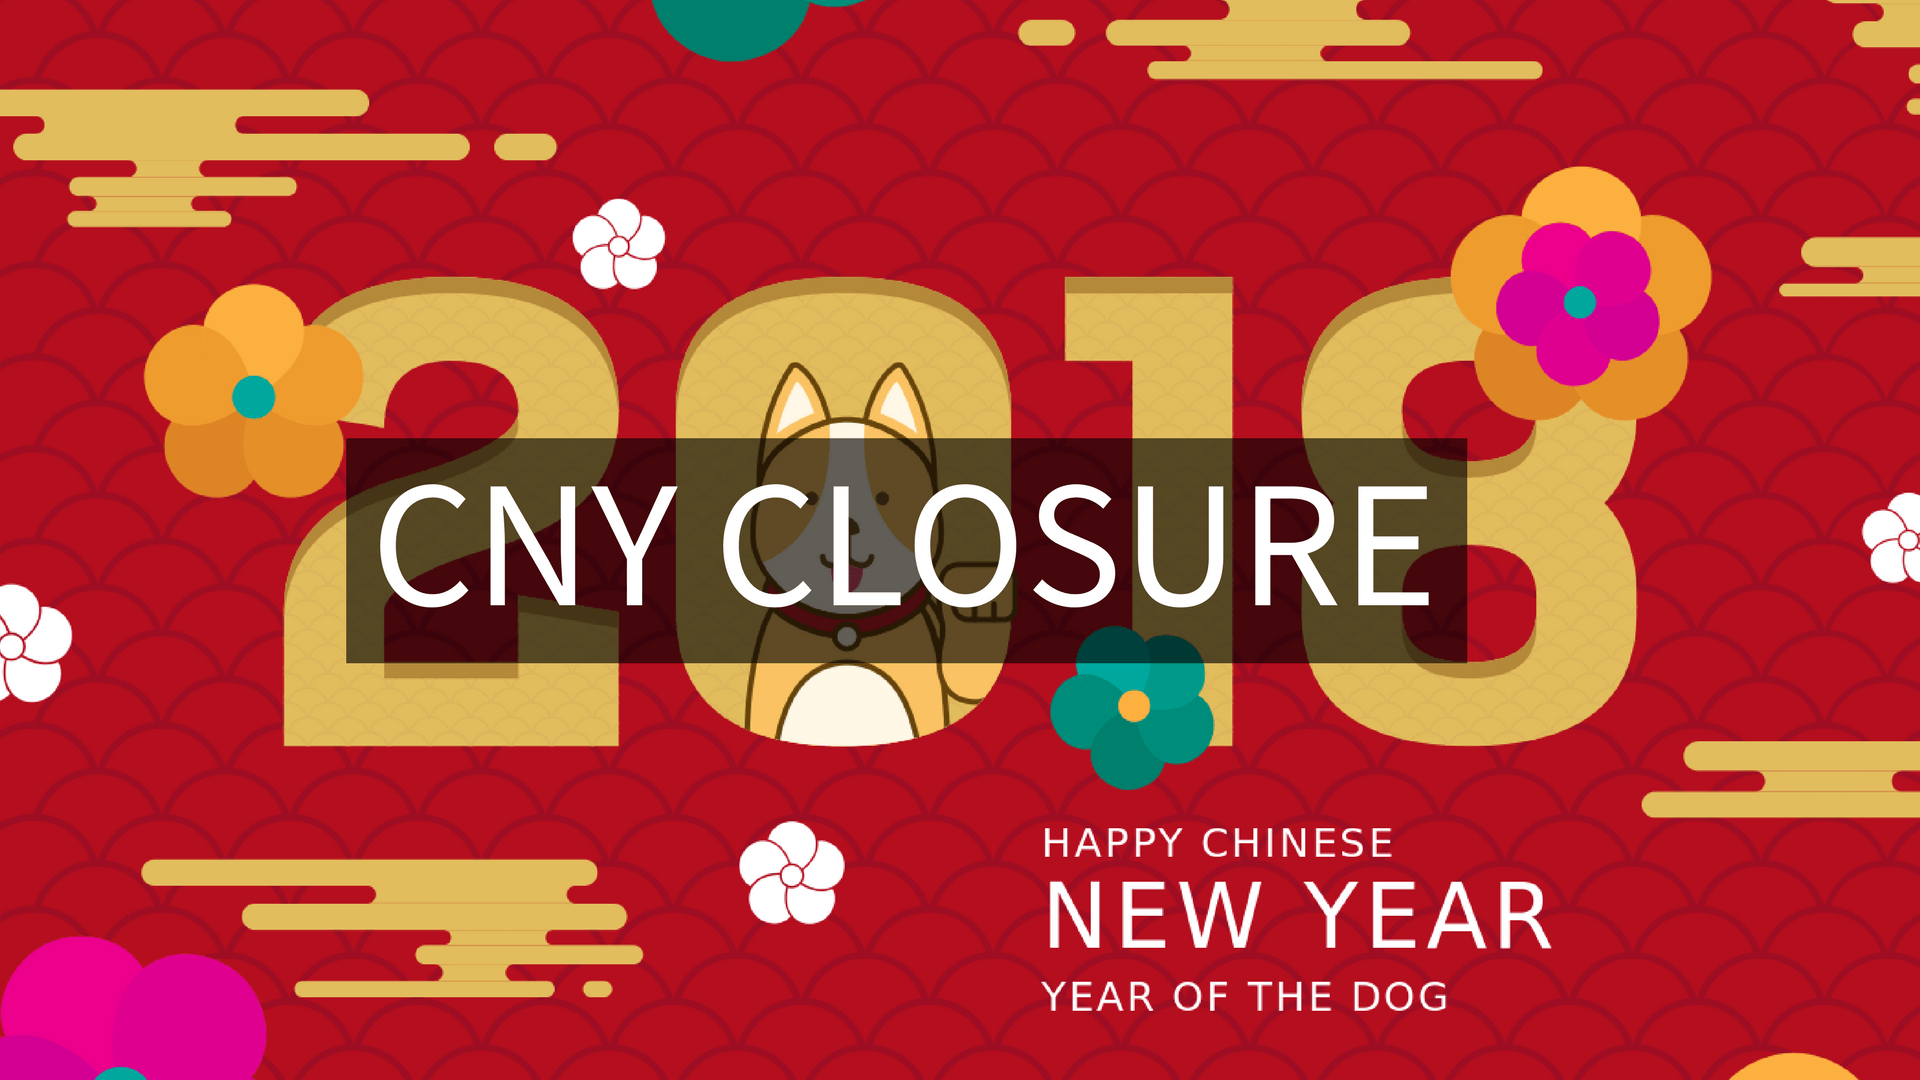 Skyfy CNY Closure